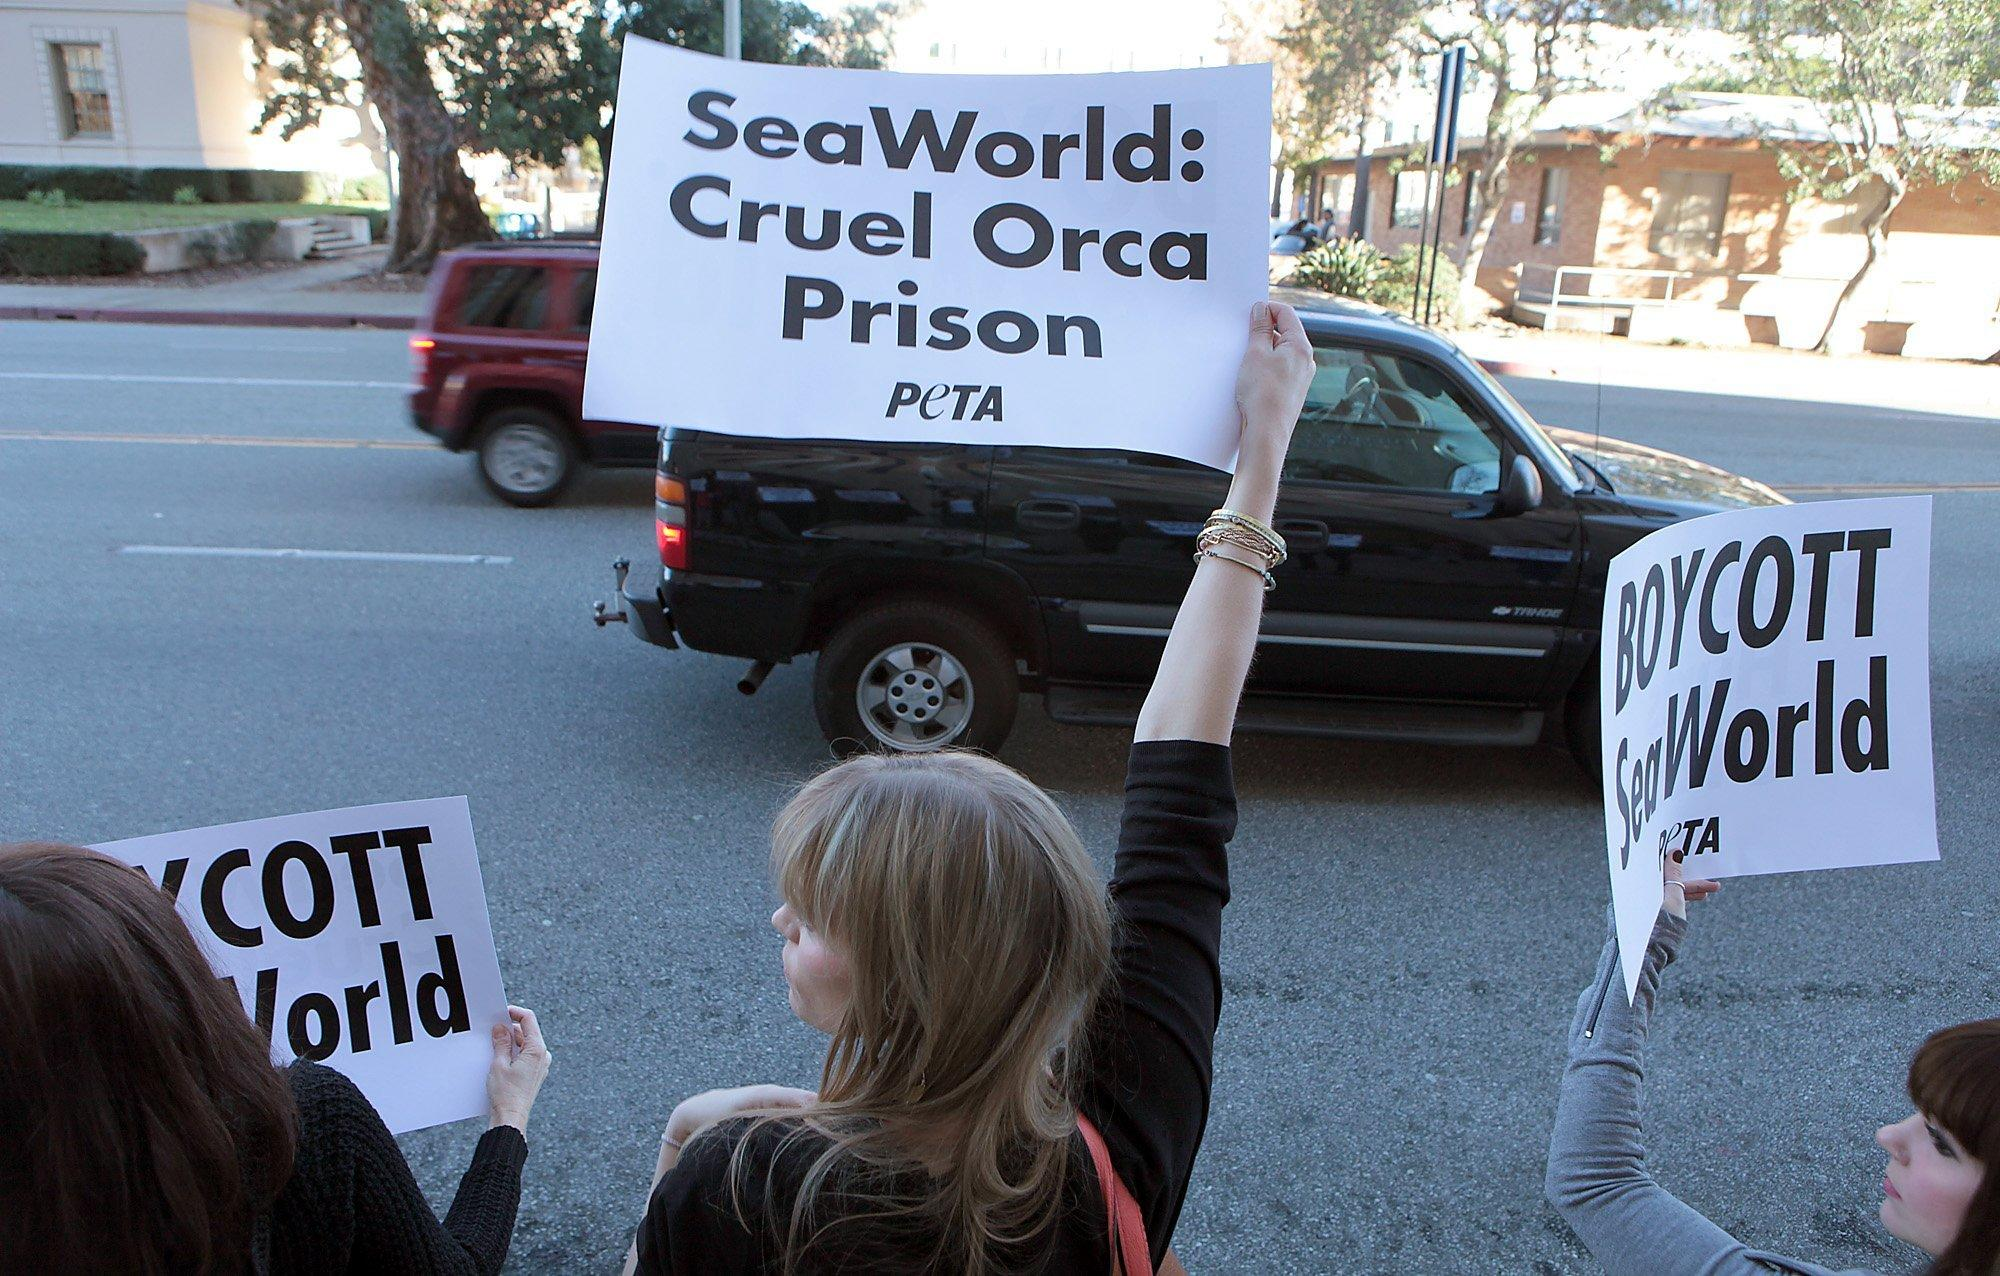 PASADENA, CA - FEBRUARY 3, 2014: PETA members and their supporters hold signs outside the Pasadena Courthouse in support of 16 people arrested for protesting against SeaWorld's float in the Rose Parade February 3 2014 in Pasadena. (Brian van der Brug / Los Angeles Times)